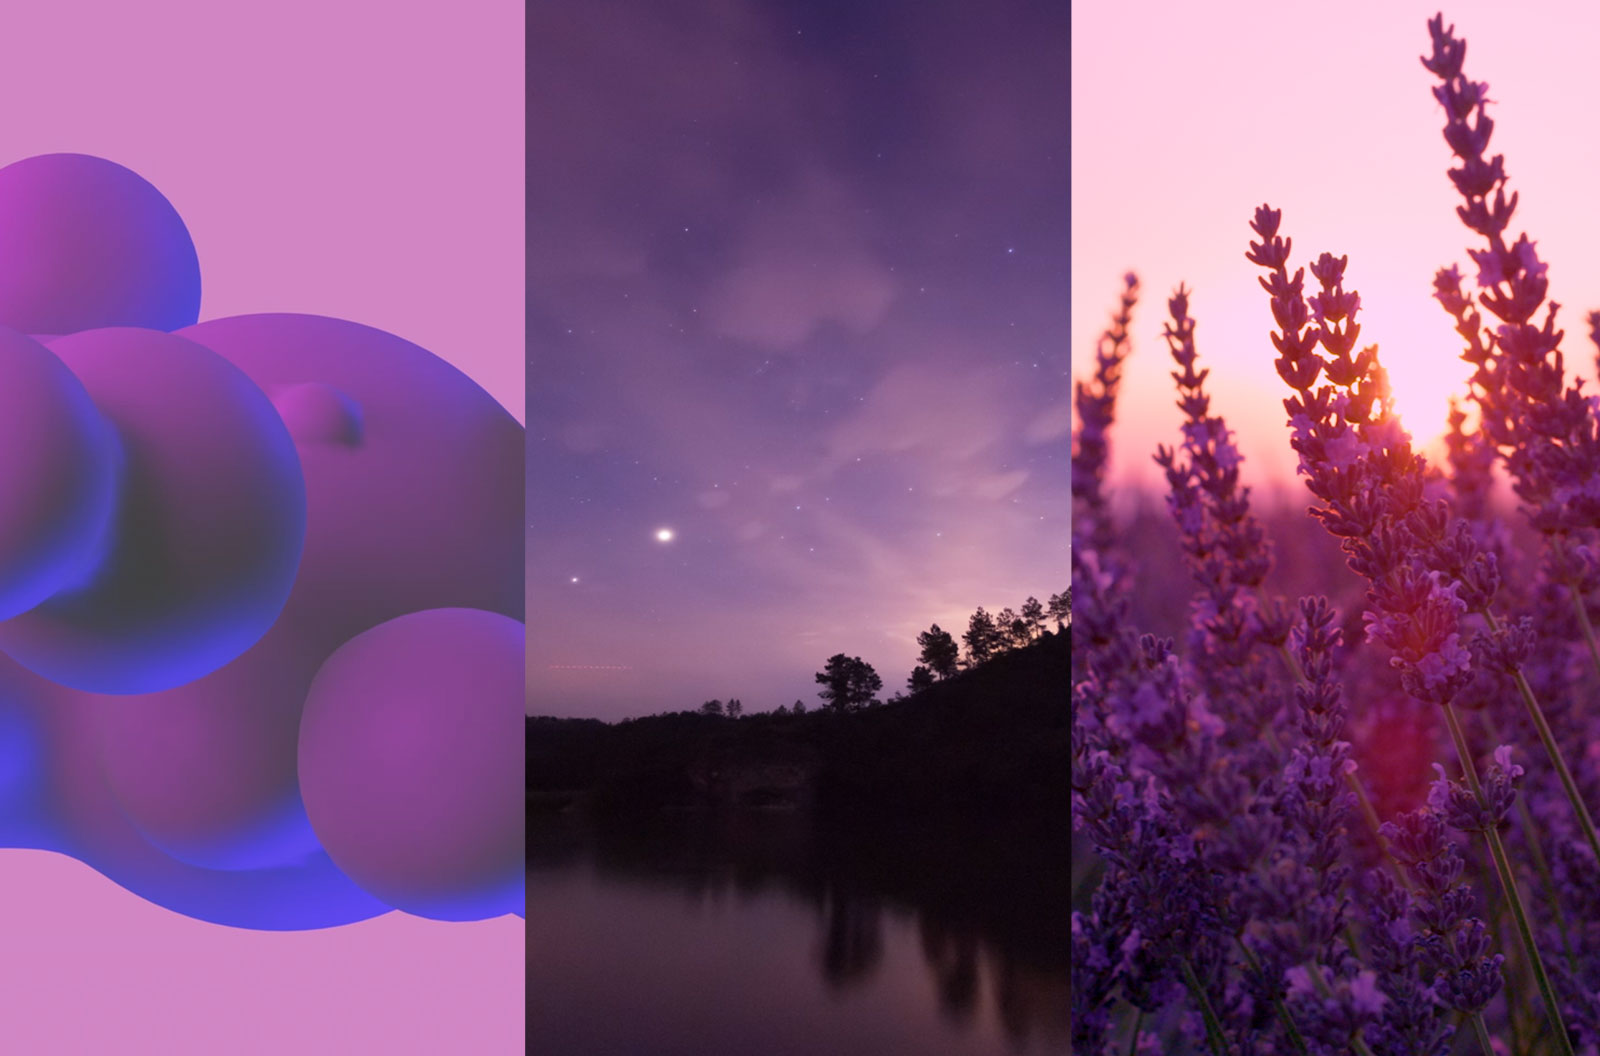 Colorful mosaic of abstract shapes and spheres, the milky way and a starry sky, and sunbeams shining through lavender stalks